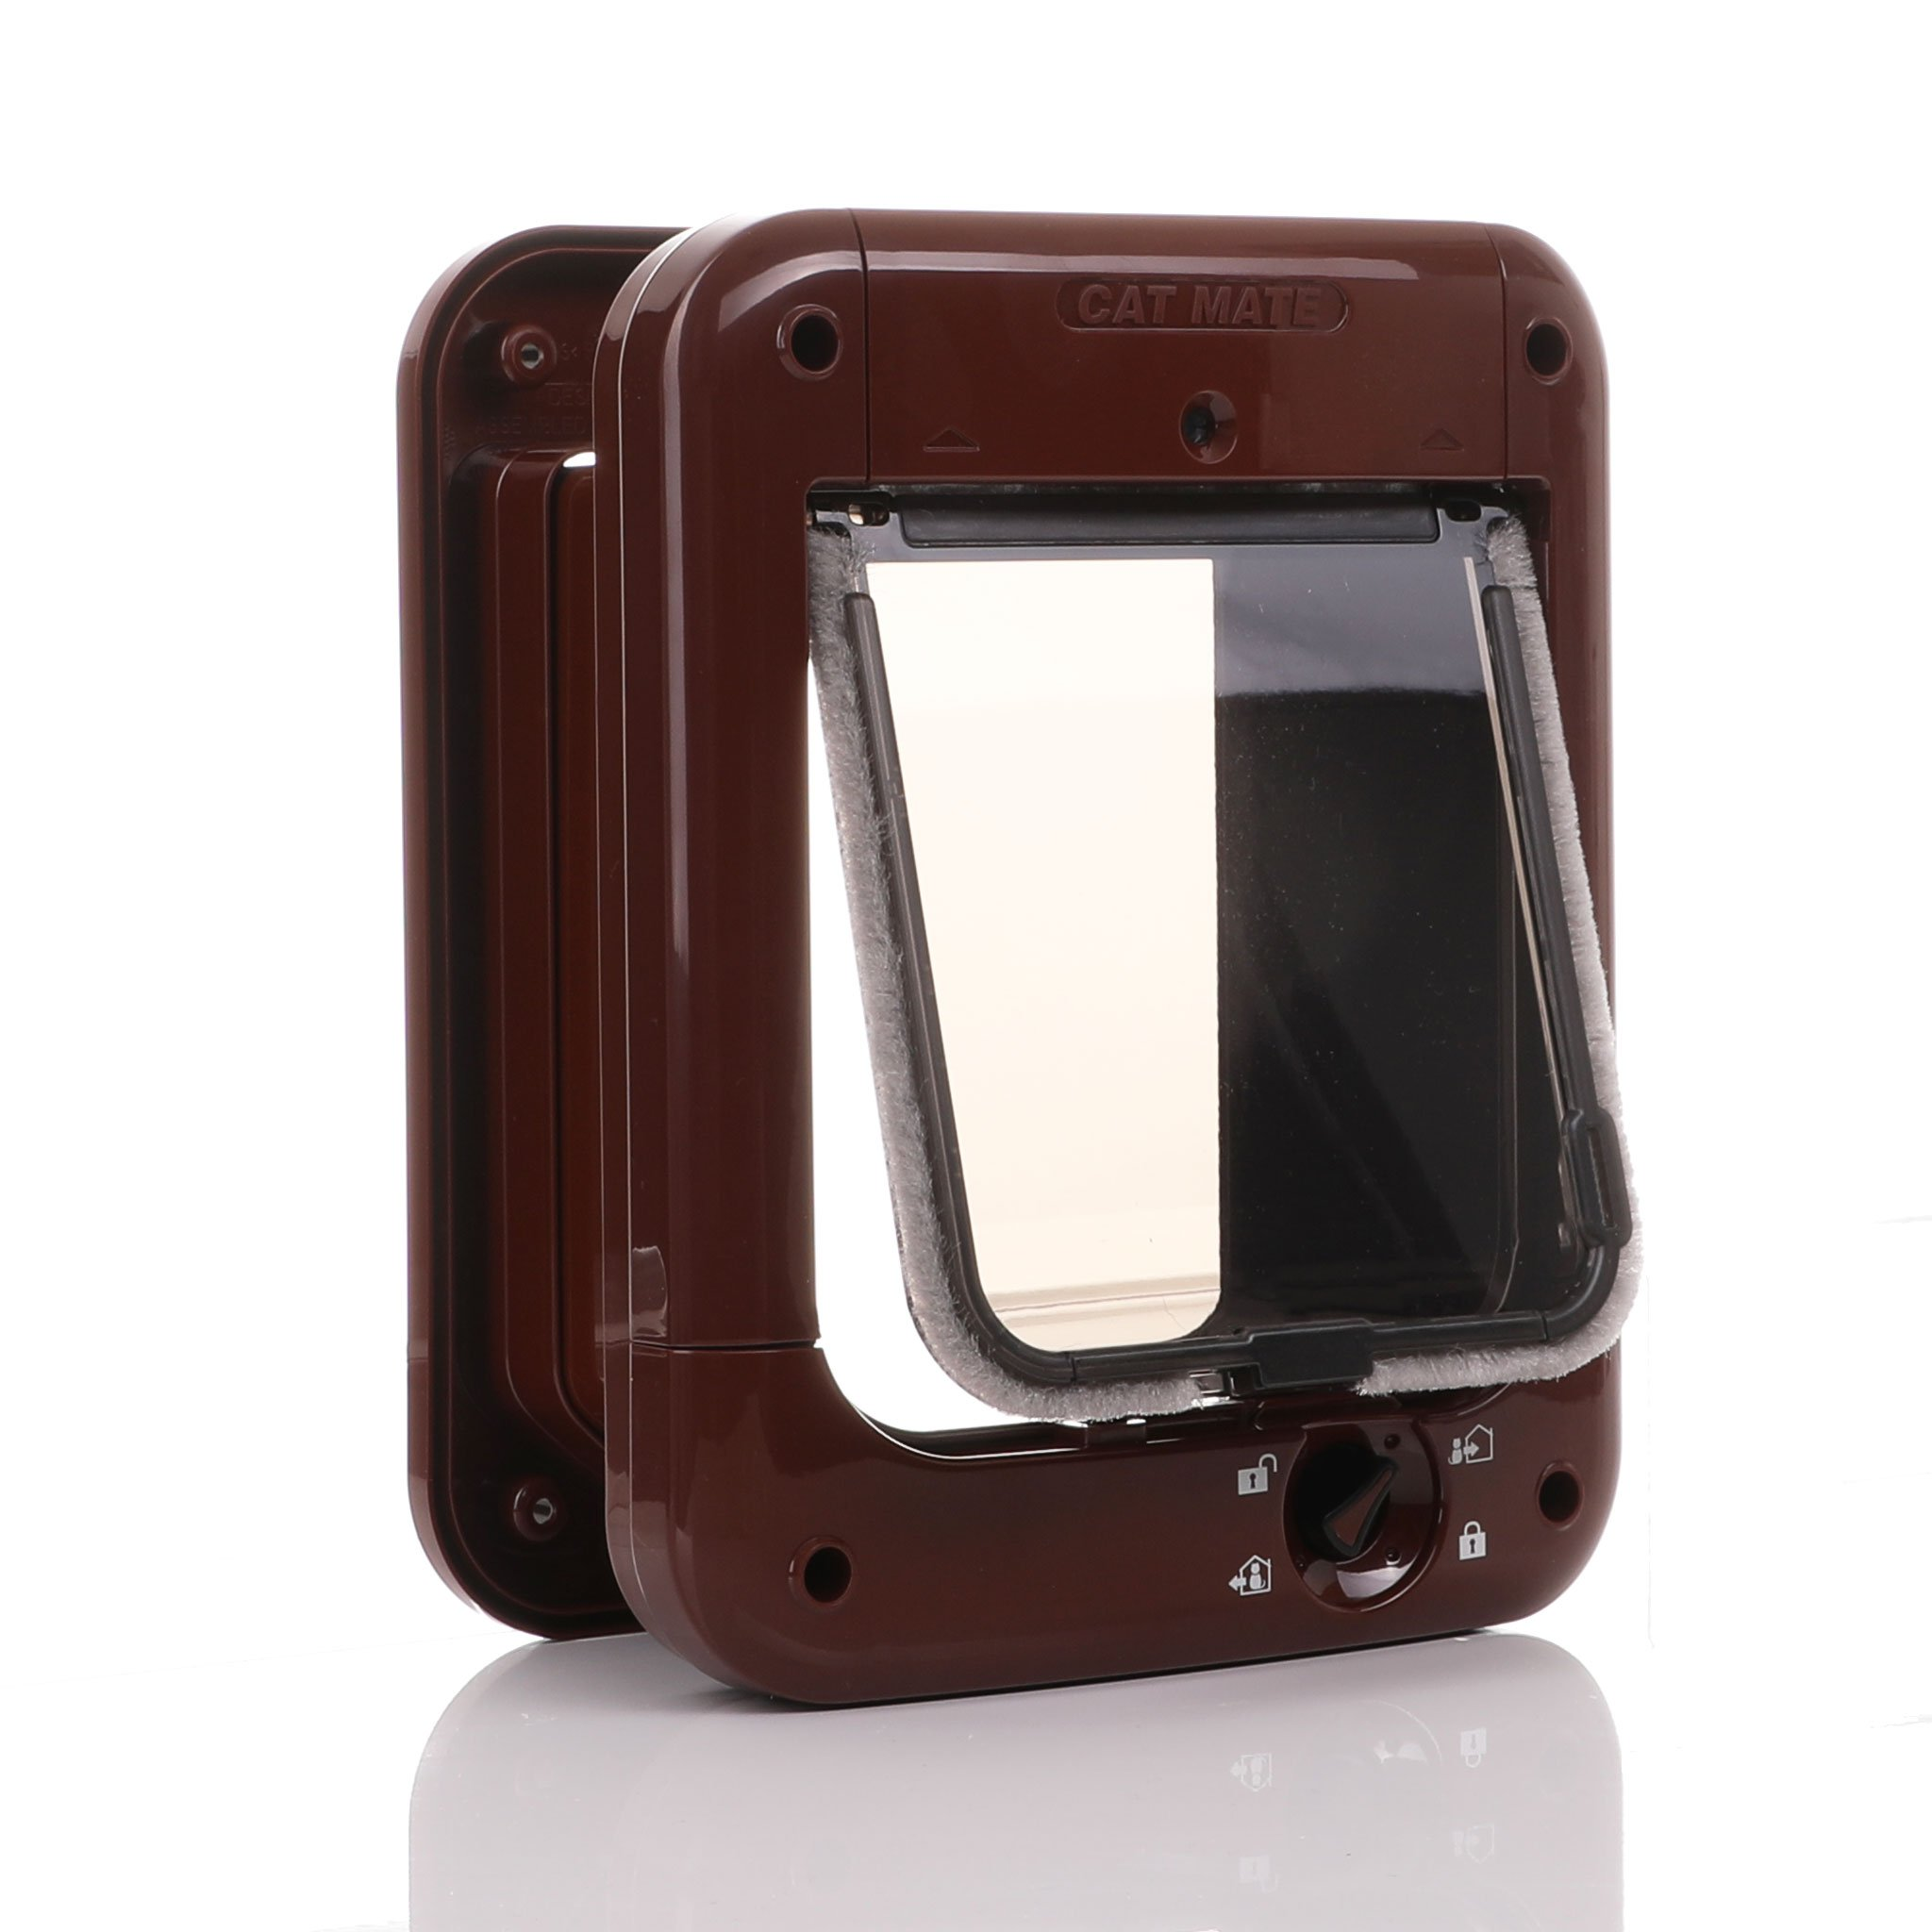 Microchip cat flap brown with a tinted bronze flap from cat Mate